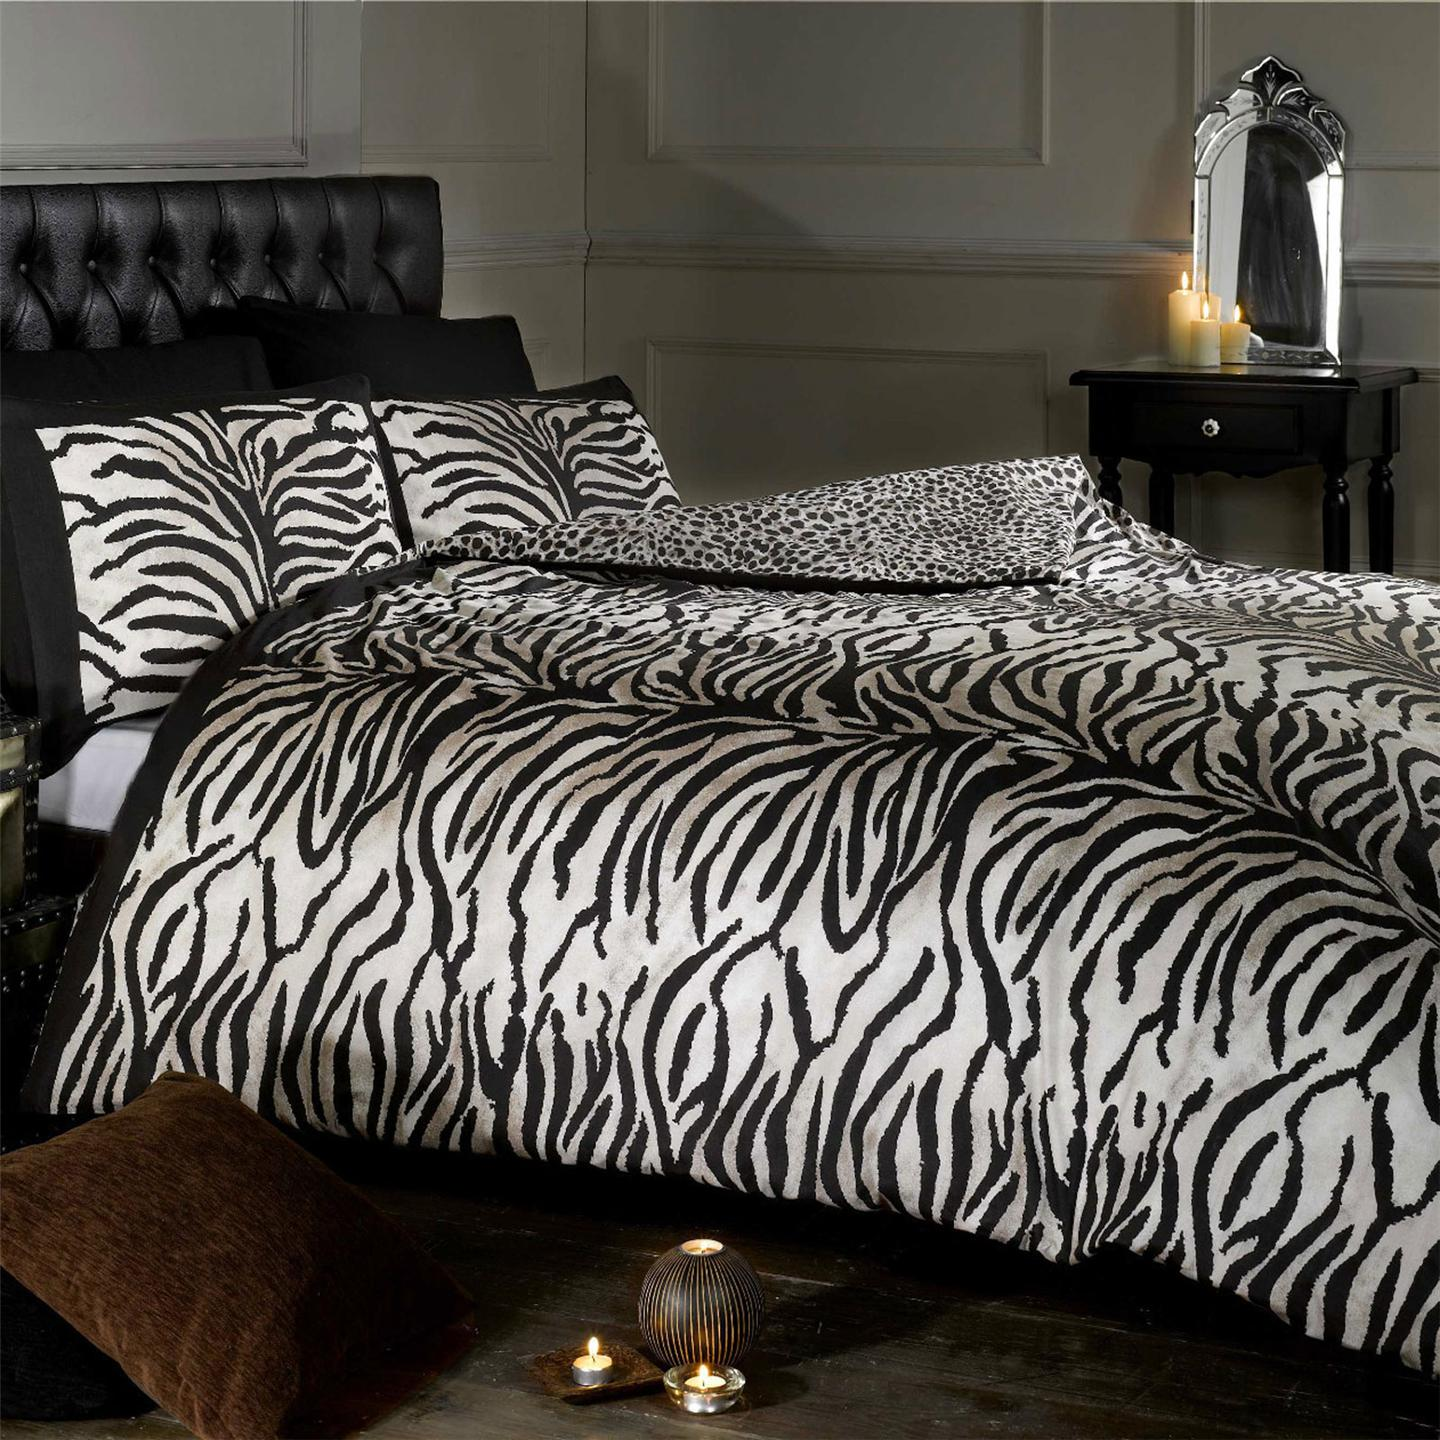 tiger leopard imprimer r versible simple housse de couette et taie d 39 oreiller set. Black Bedroom Furniture Sets. Home Design Ideas